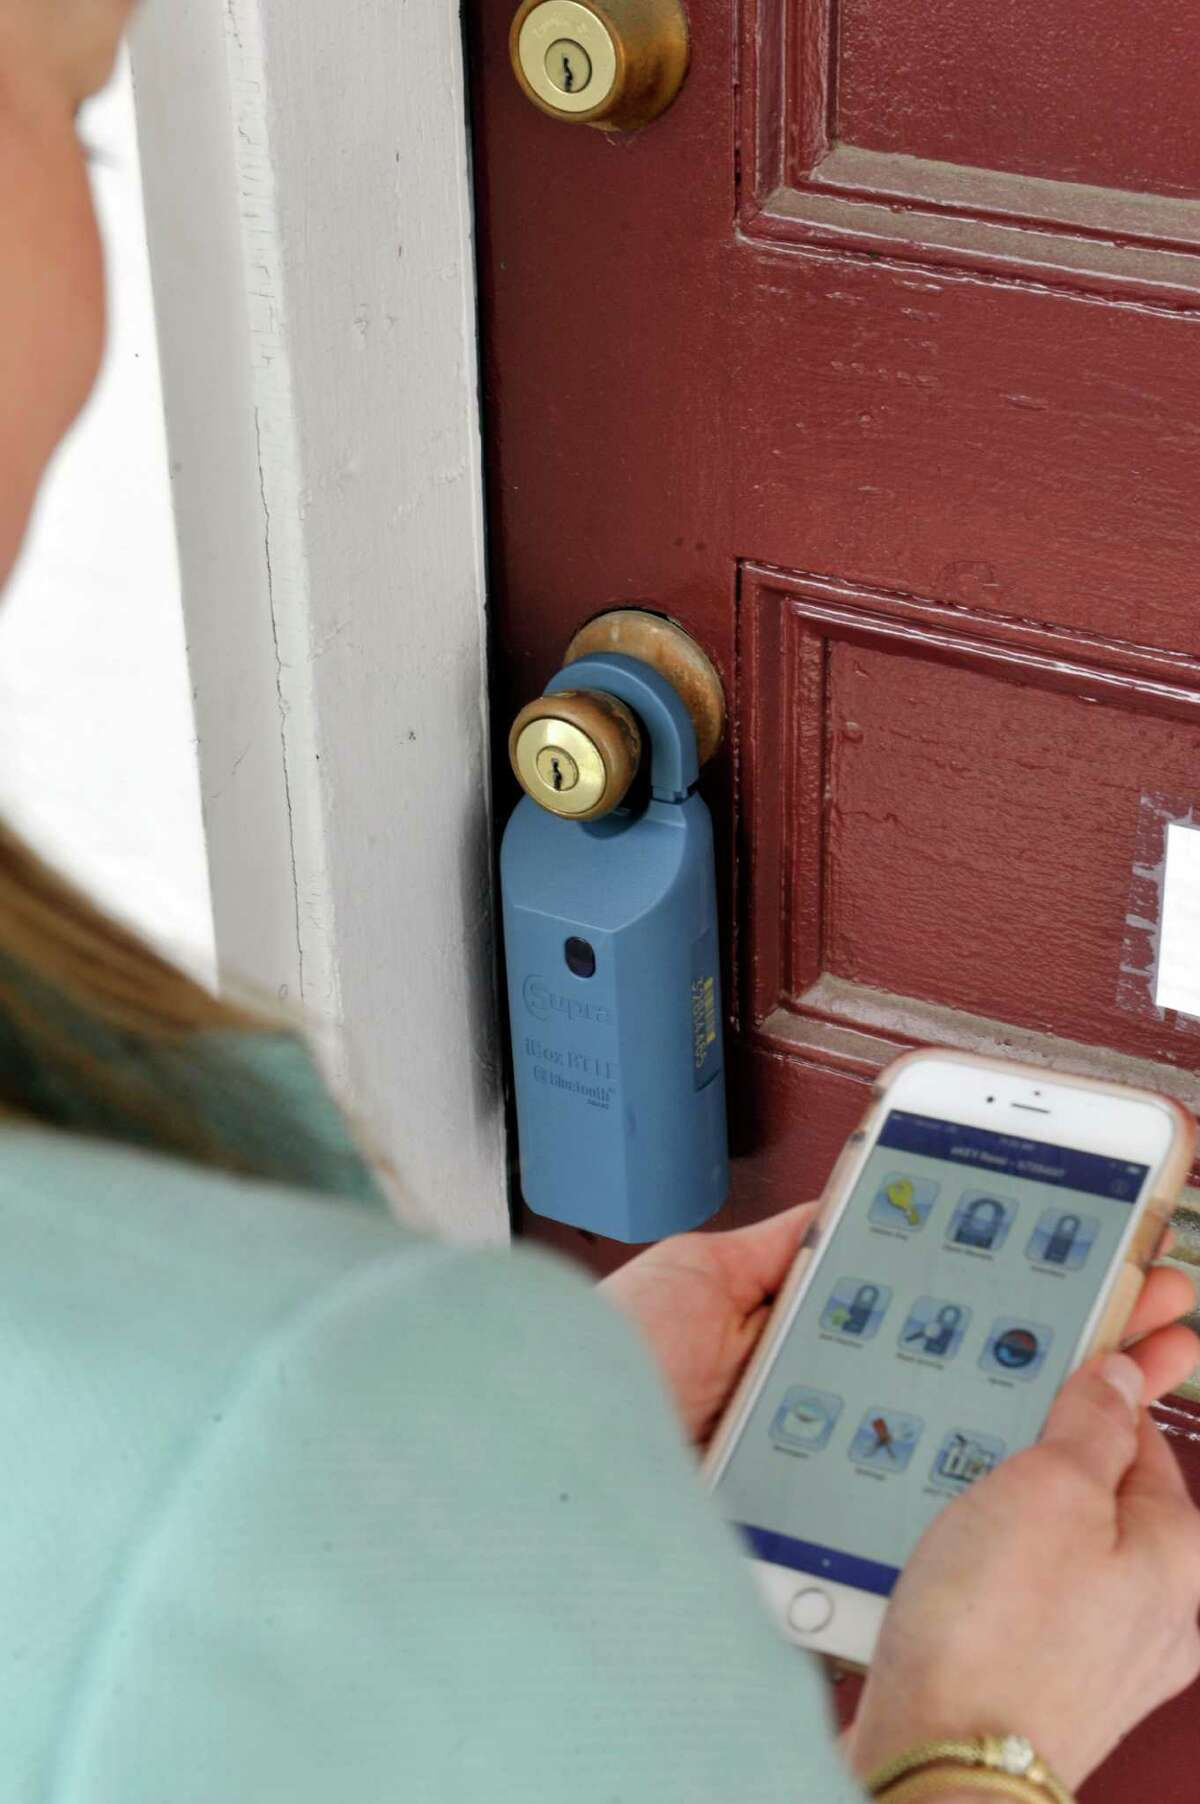 Judi Gabler, a real estate agent with Realty USA demonstrates how the iBox, a secure key holder, works on Tuesday, April 19, 2016, in Delmar, N.Y. (Paul Buckowski / Times Union)